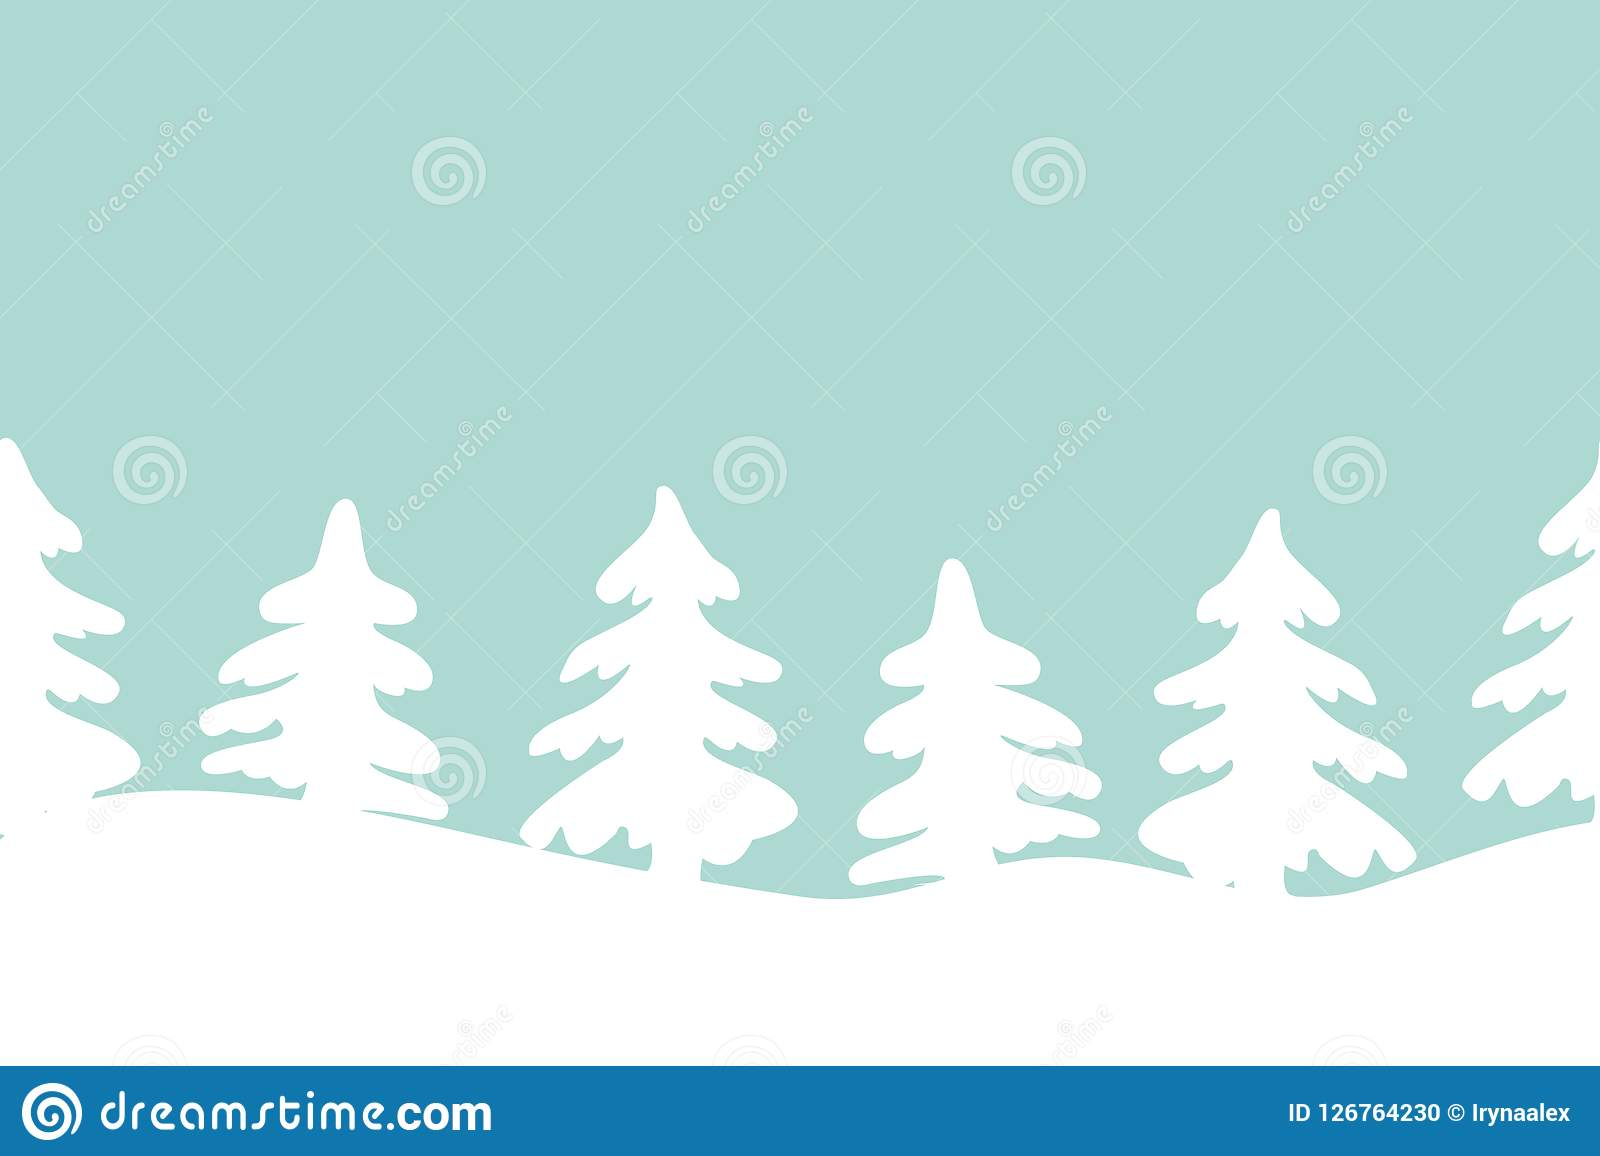 Christmas Trees Silhouette.Silhouettes Of Christmas Trees On A Blue Background